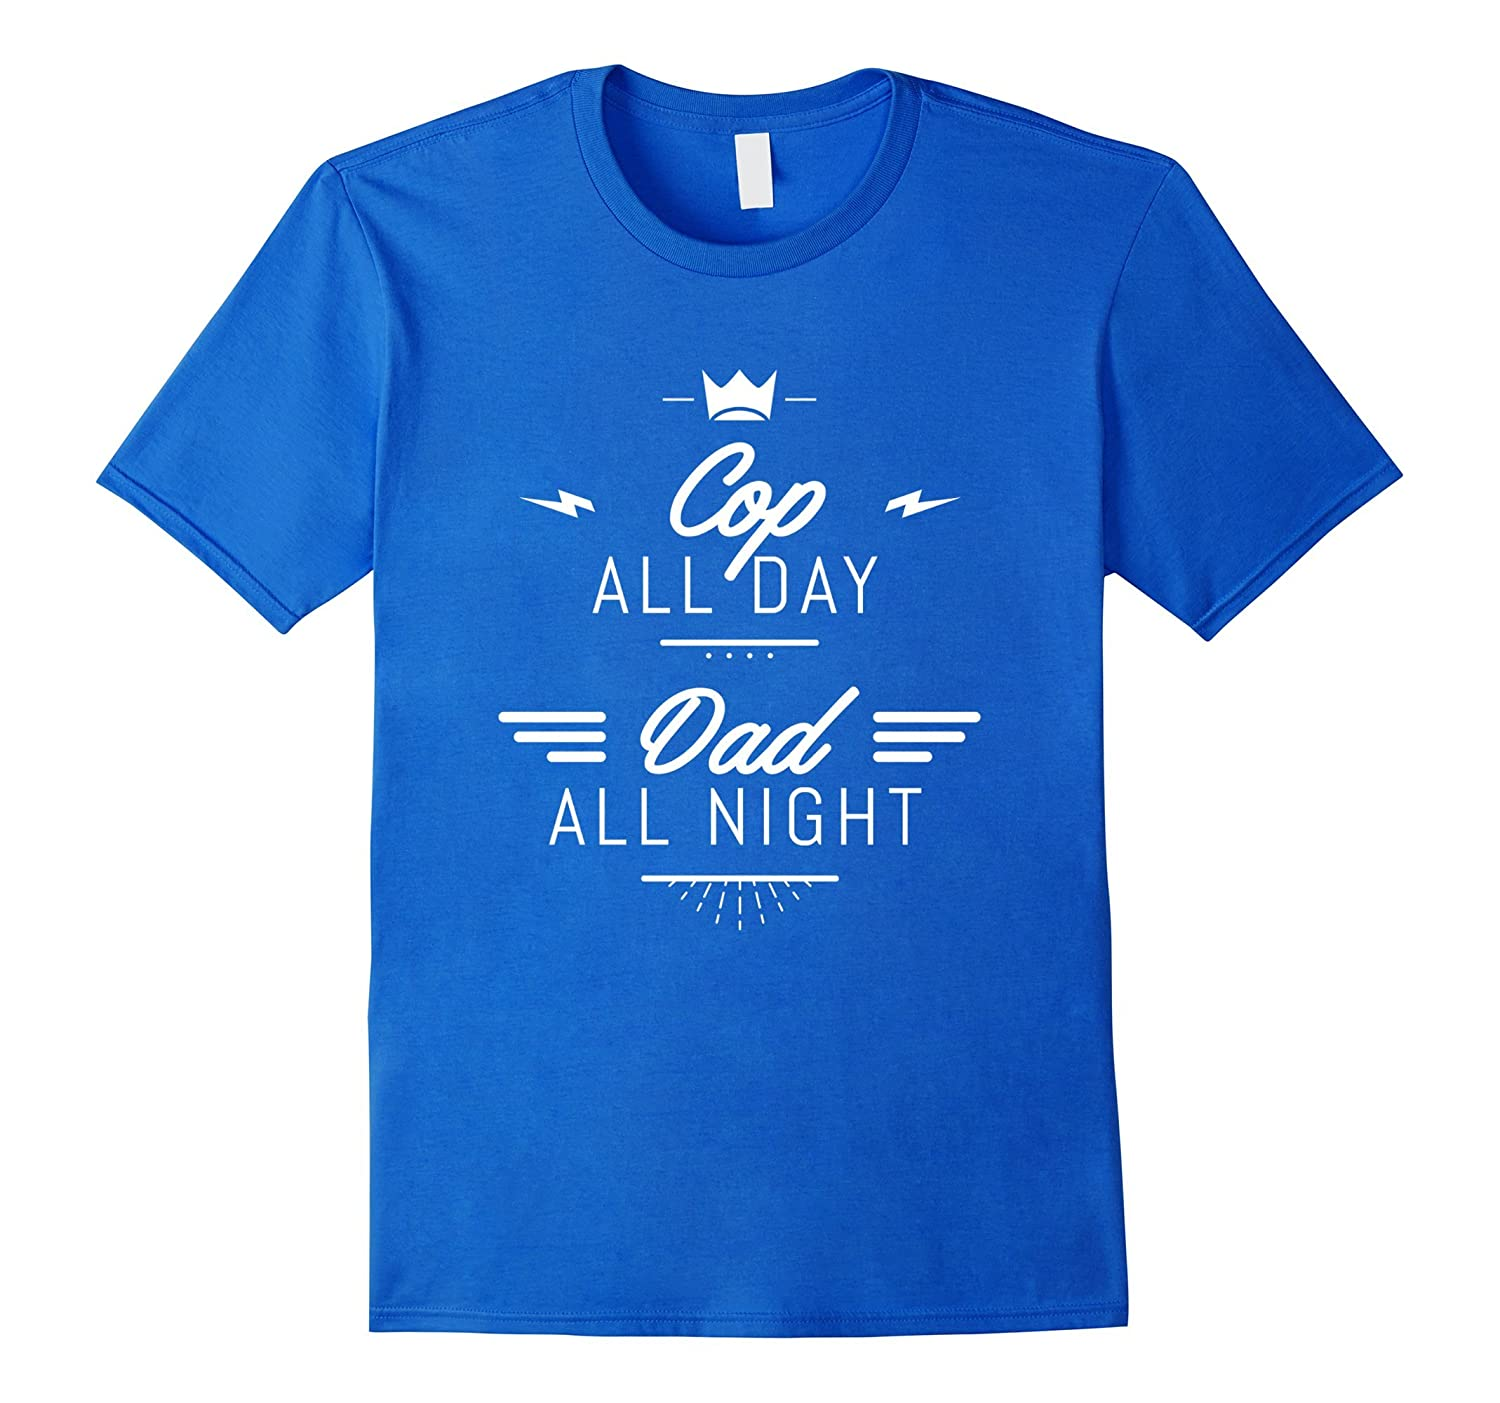 Cop All Day Dad All Night - Funny T-Shirt-TD